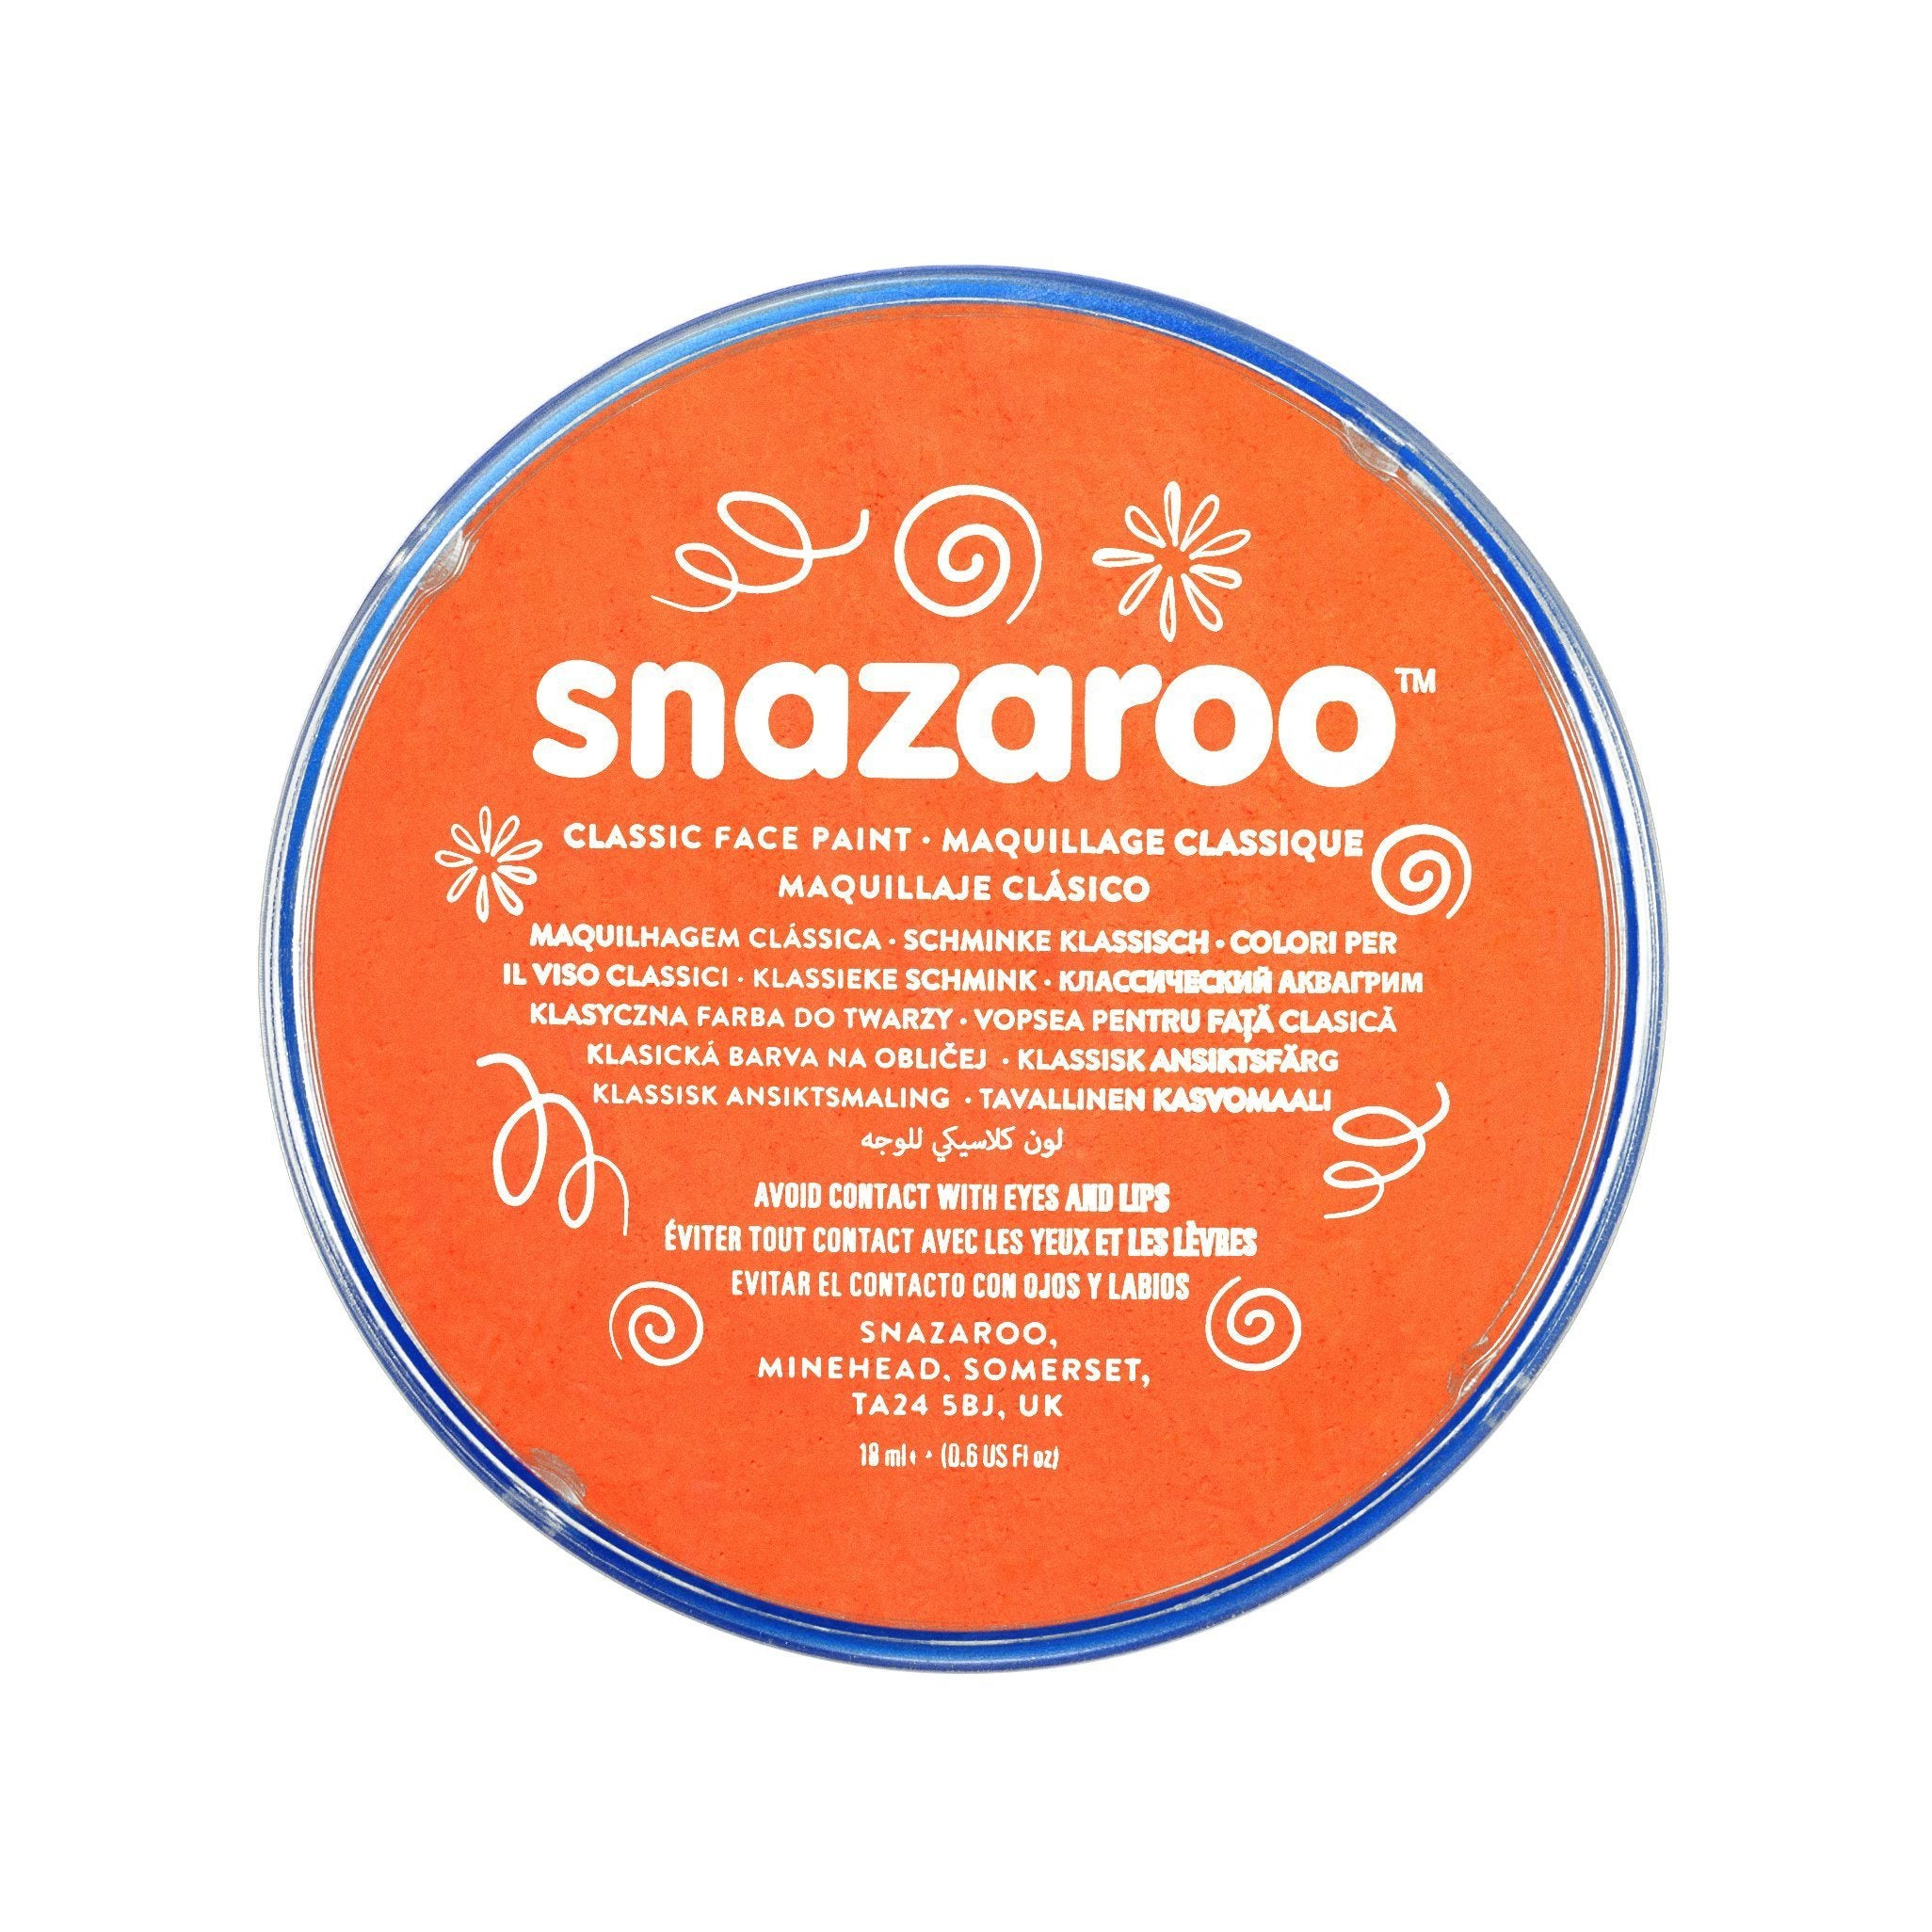 Snazaroo Classic Orange Face & Body Paint - stamptastic-uk